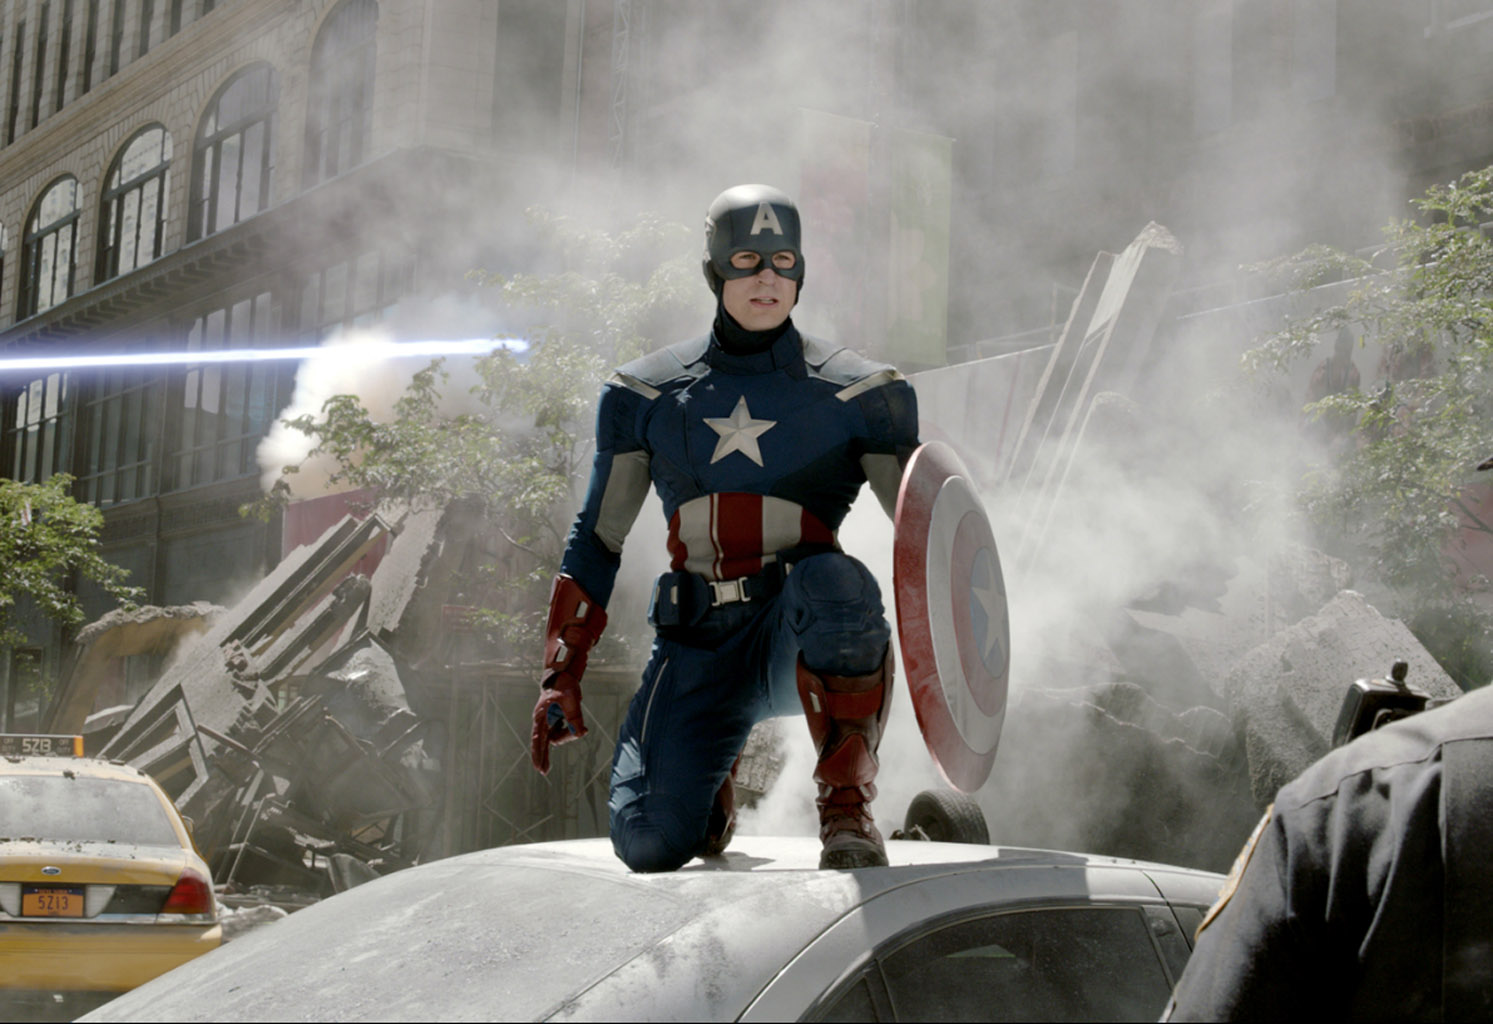 http://4.bp.blogspot.com/-gnAaq-UJxCs/T6kpbdvG8sI/AAAAAAAAAHs/goG5GwFqFdU/s1600/Marvel-The-Avengers-Movie-2012-HD-Wallpaper-Captain-America-Steve-Rogers-81.jpg